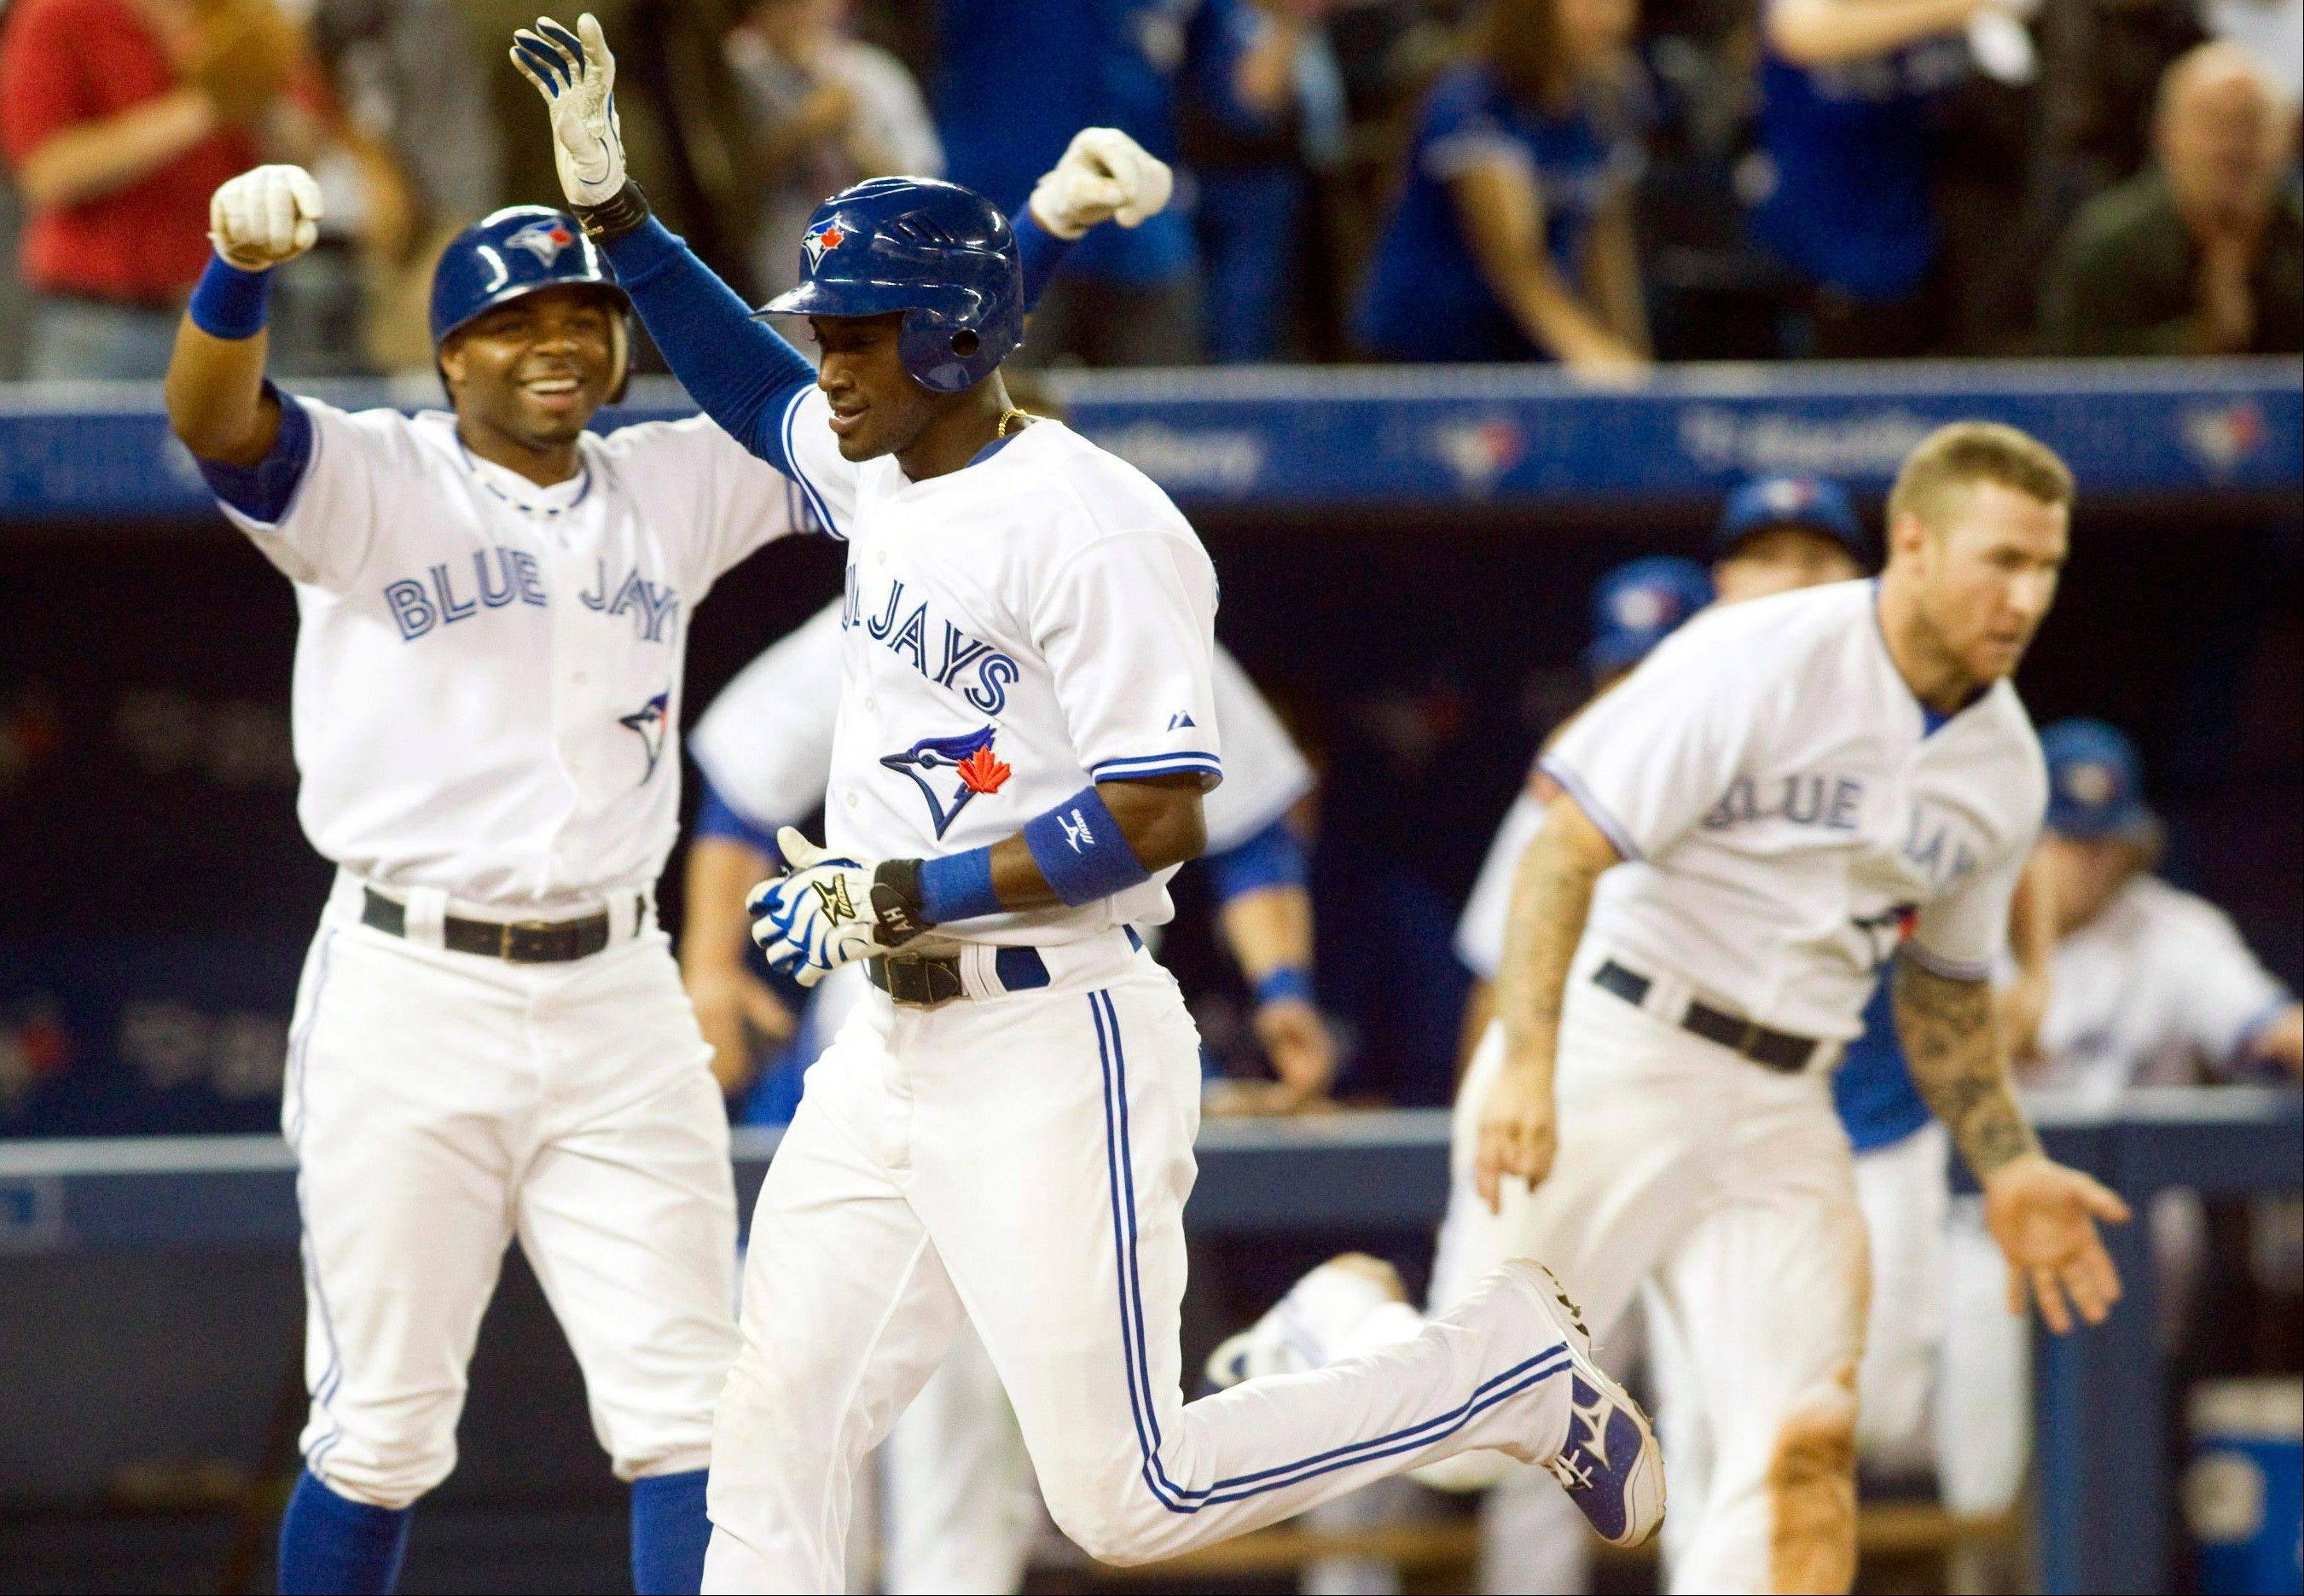 The Blue Jays� Adeiny Hechavarria, center, celebrates scoring on Anthony Gose�s hit a game-winning single against the Minnesota Twins during the 10th inning Monday in Toronto.